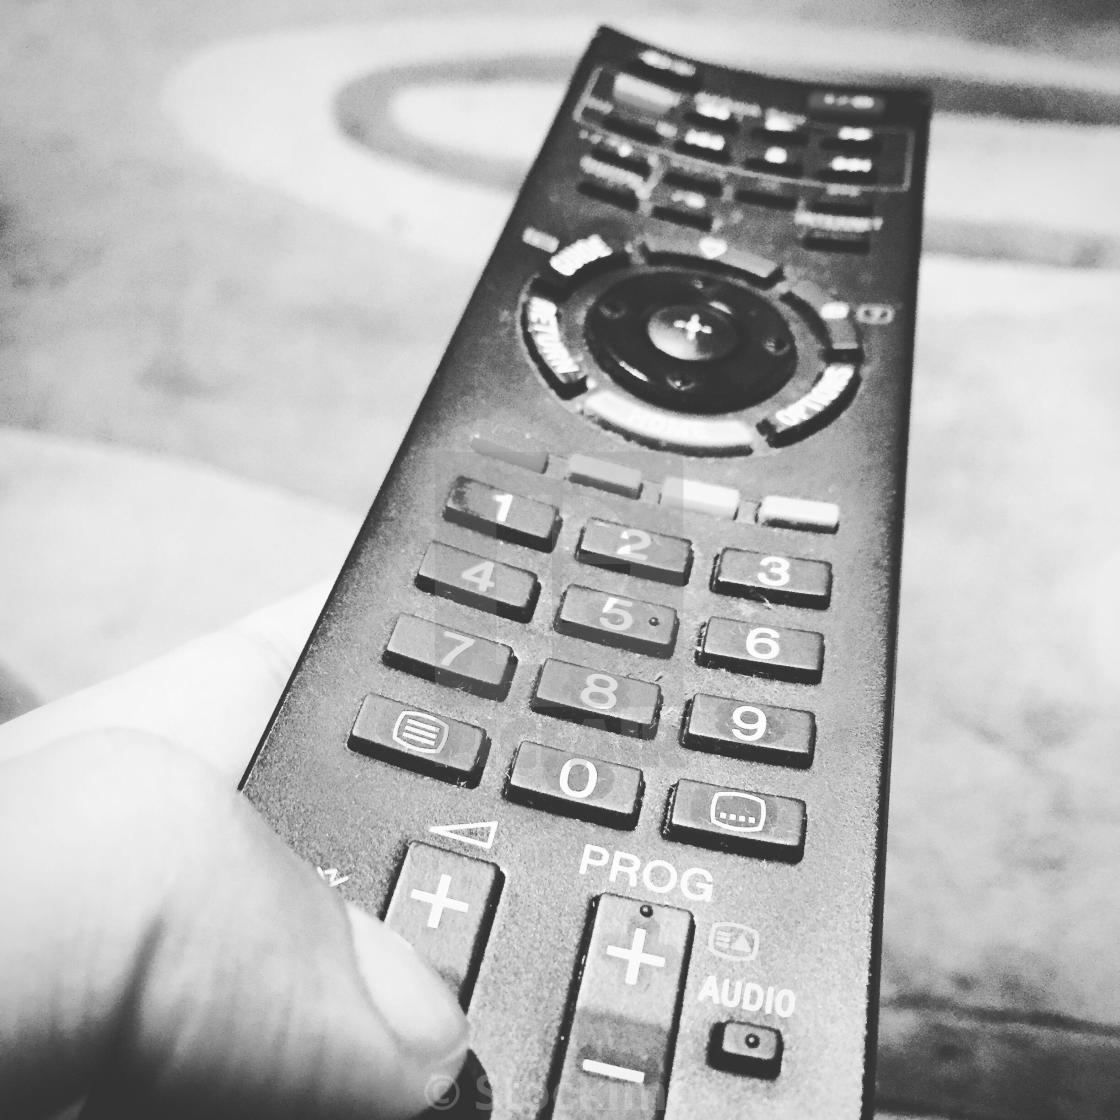 TV remote control in black and white - License, download or print